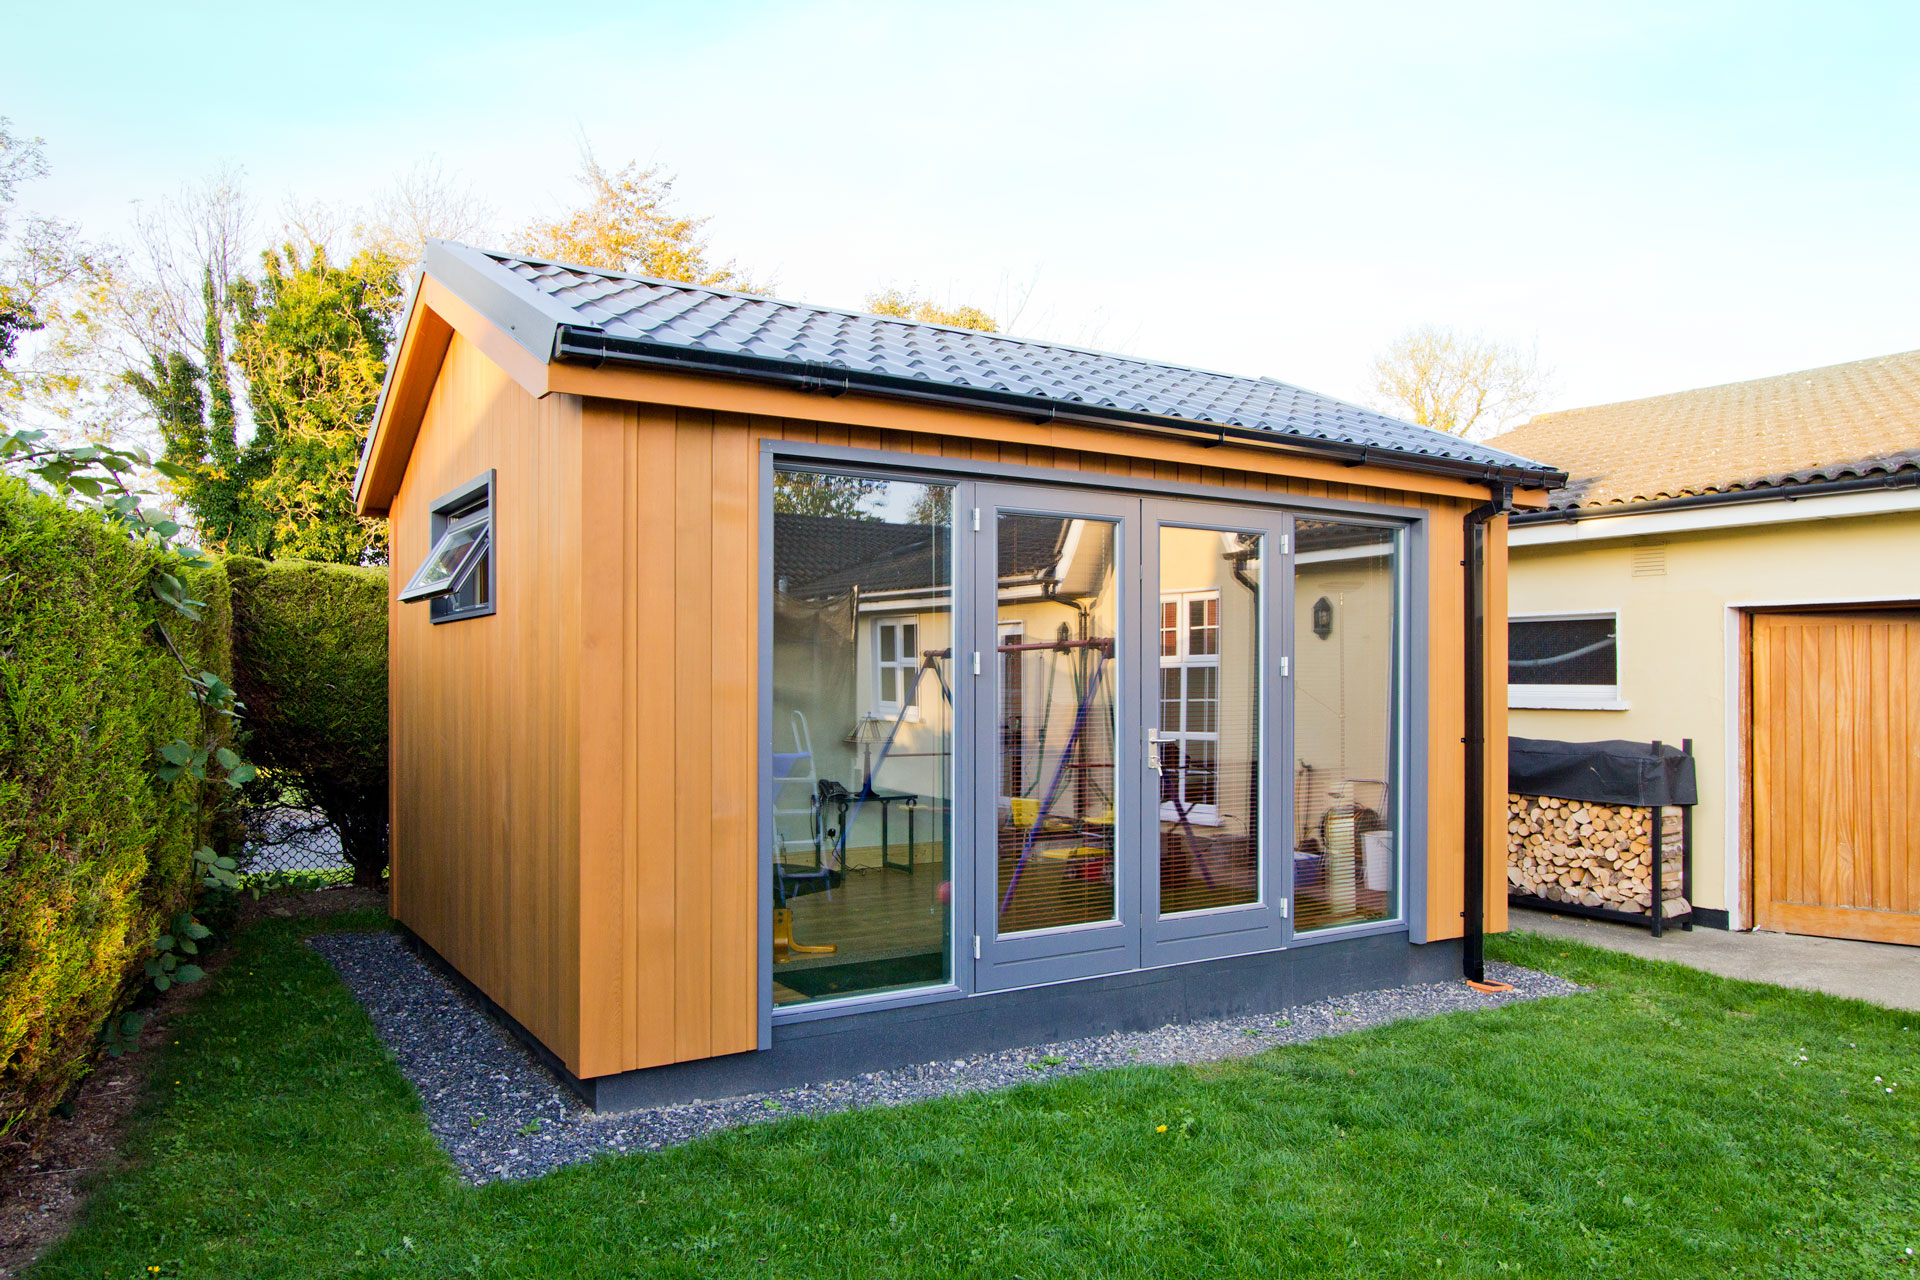 Office Pods Ideas Gallery Garden Office Ideas Gallery ECOS Ireland